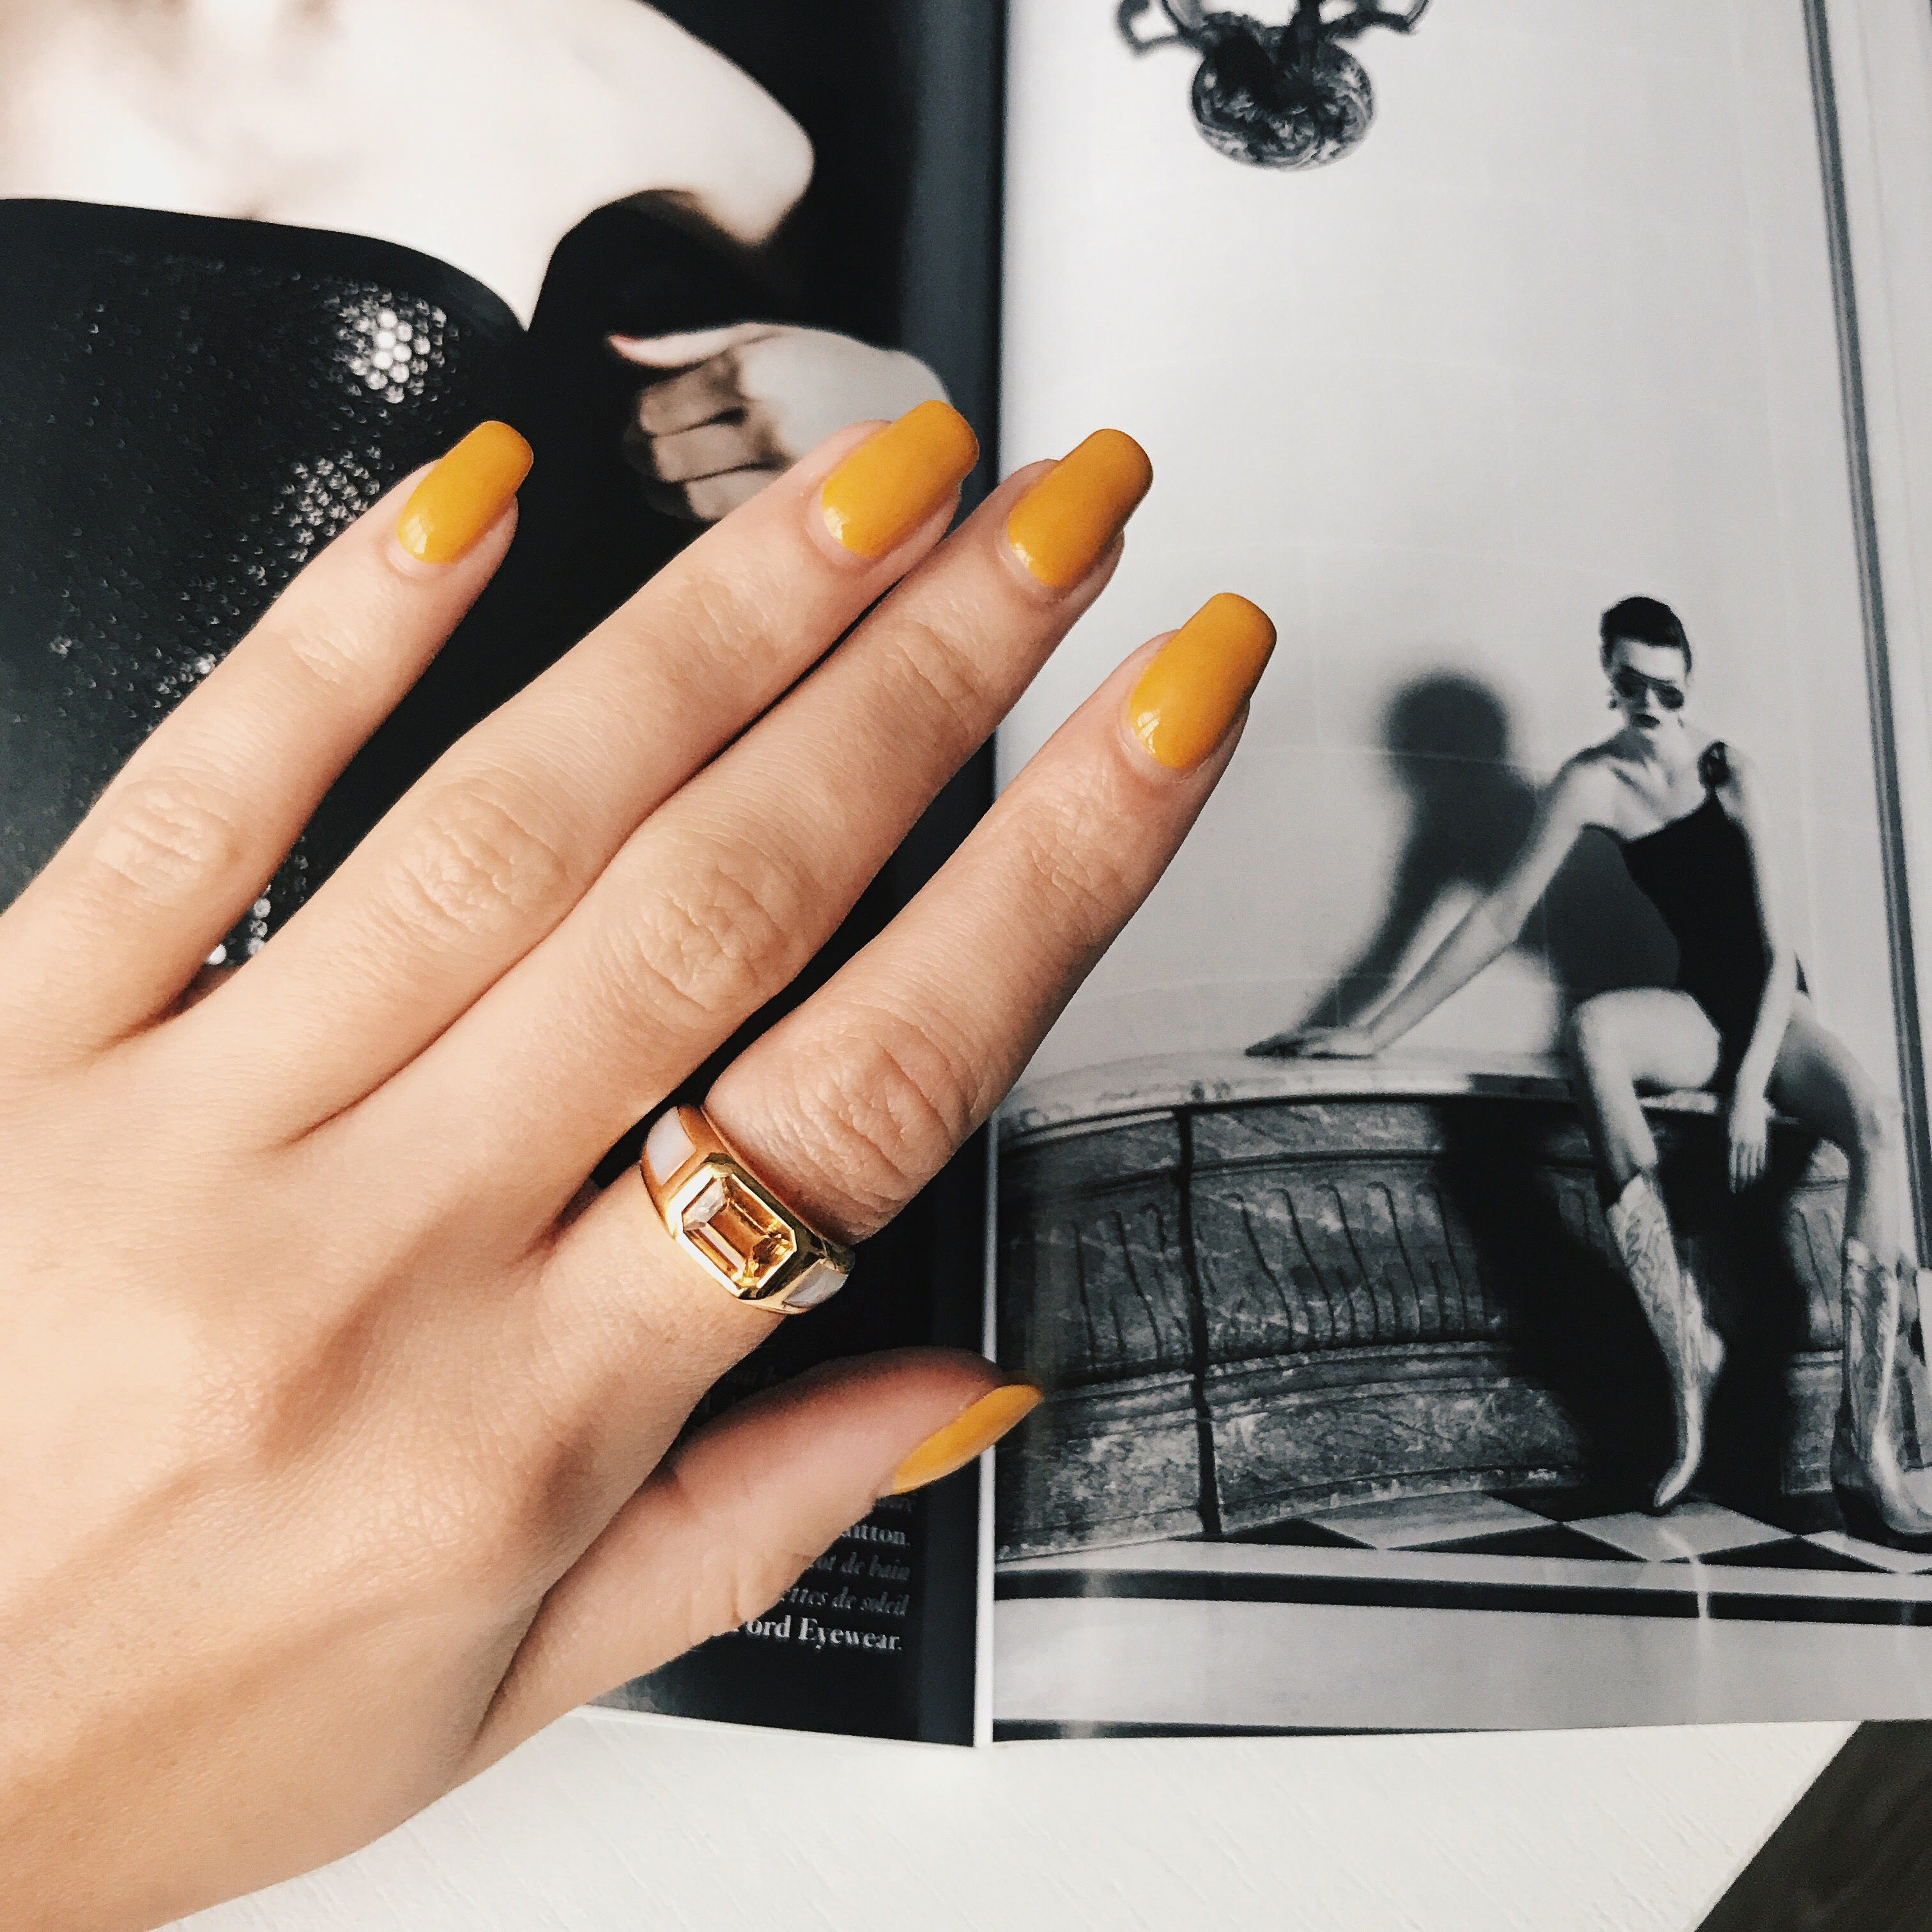 Nika Huk (@fashionagony) with Elite & Luck Rings